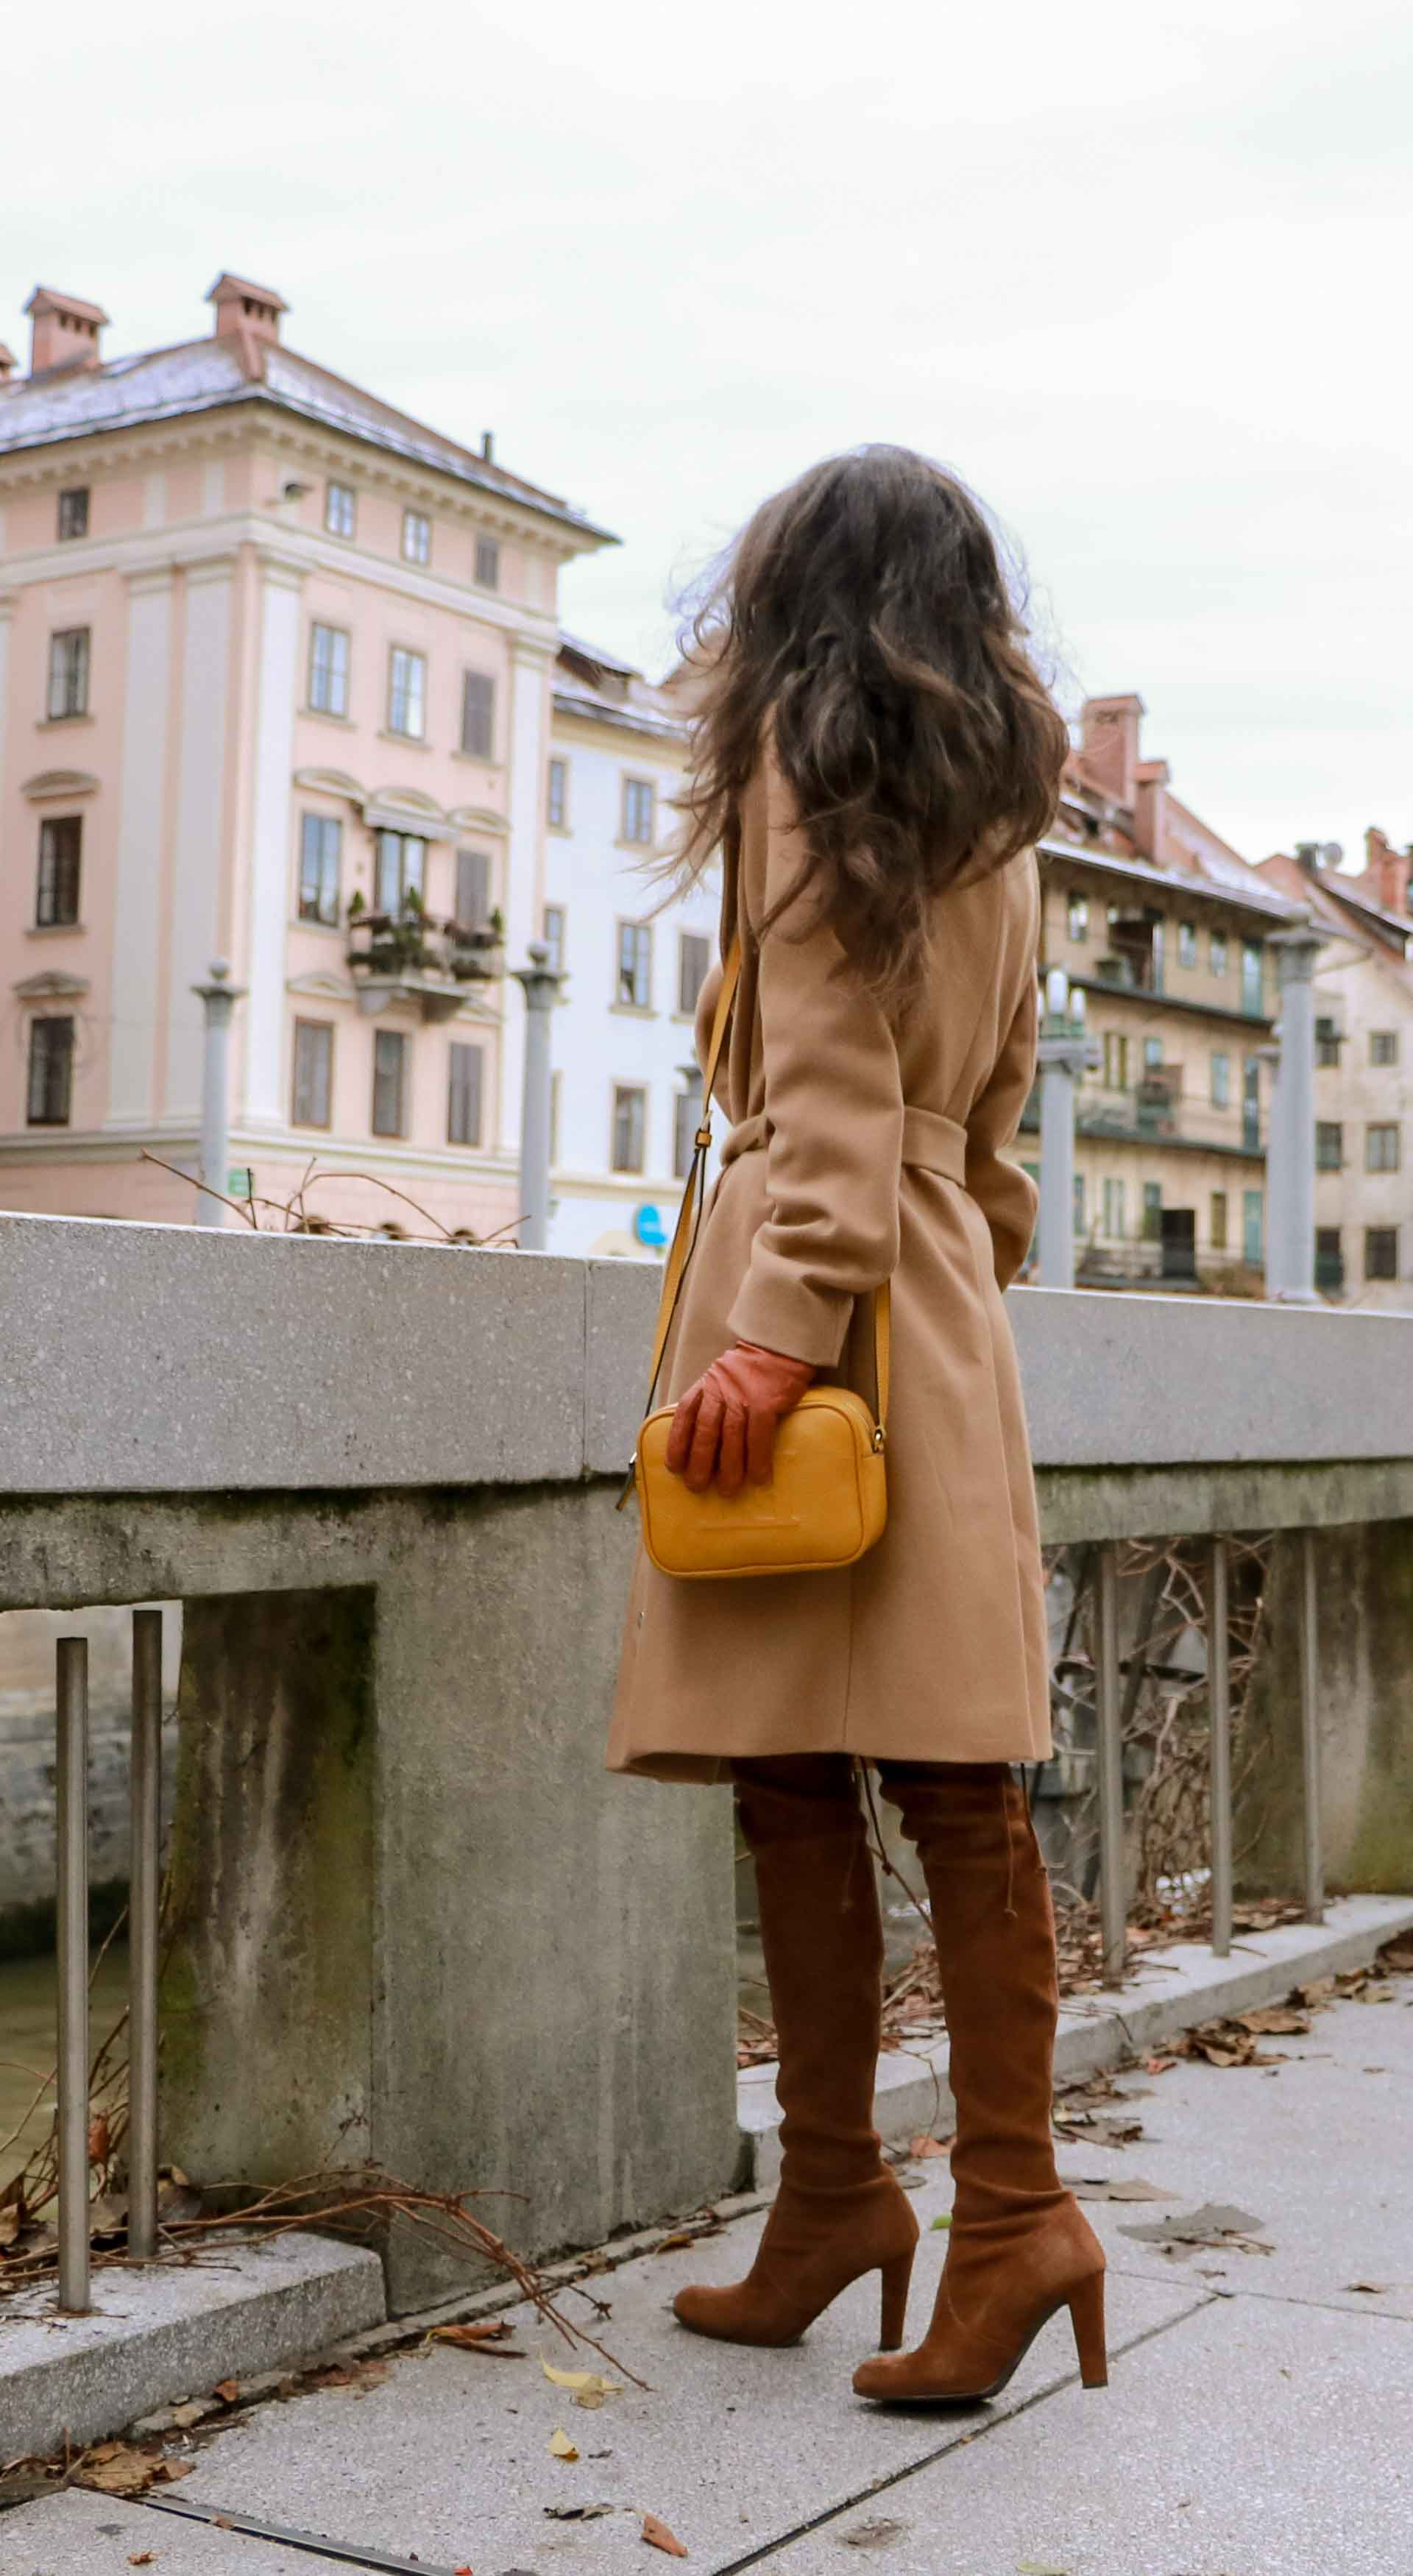 Beautiful Slovenian Fashion Blogger Veronika Lipar of Brunette from Wall wearing Escada camel wrap coat, Stuart Weitzman brown over the knee boots, Escada yellow shoulder bag for a day date in autumn